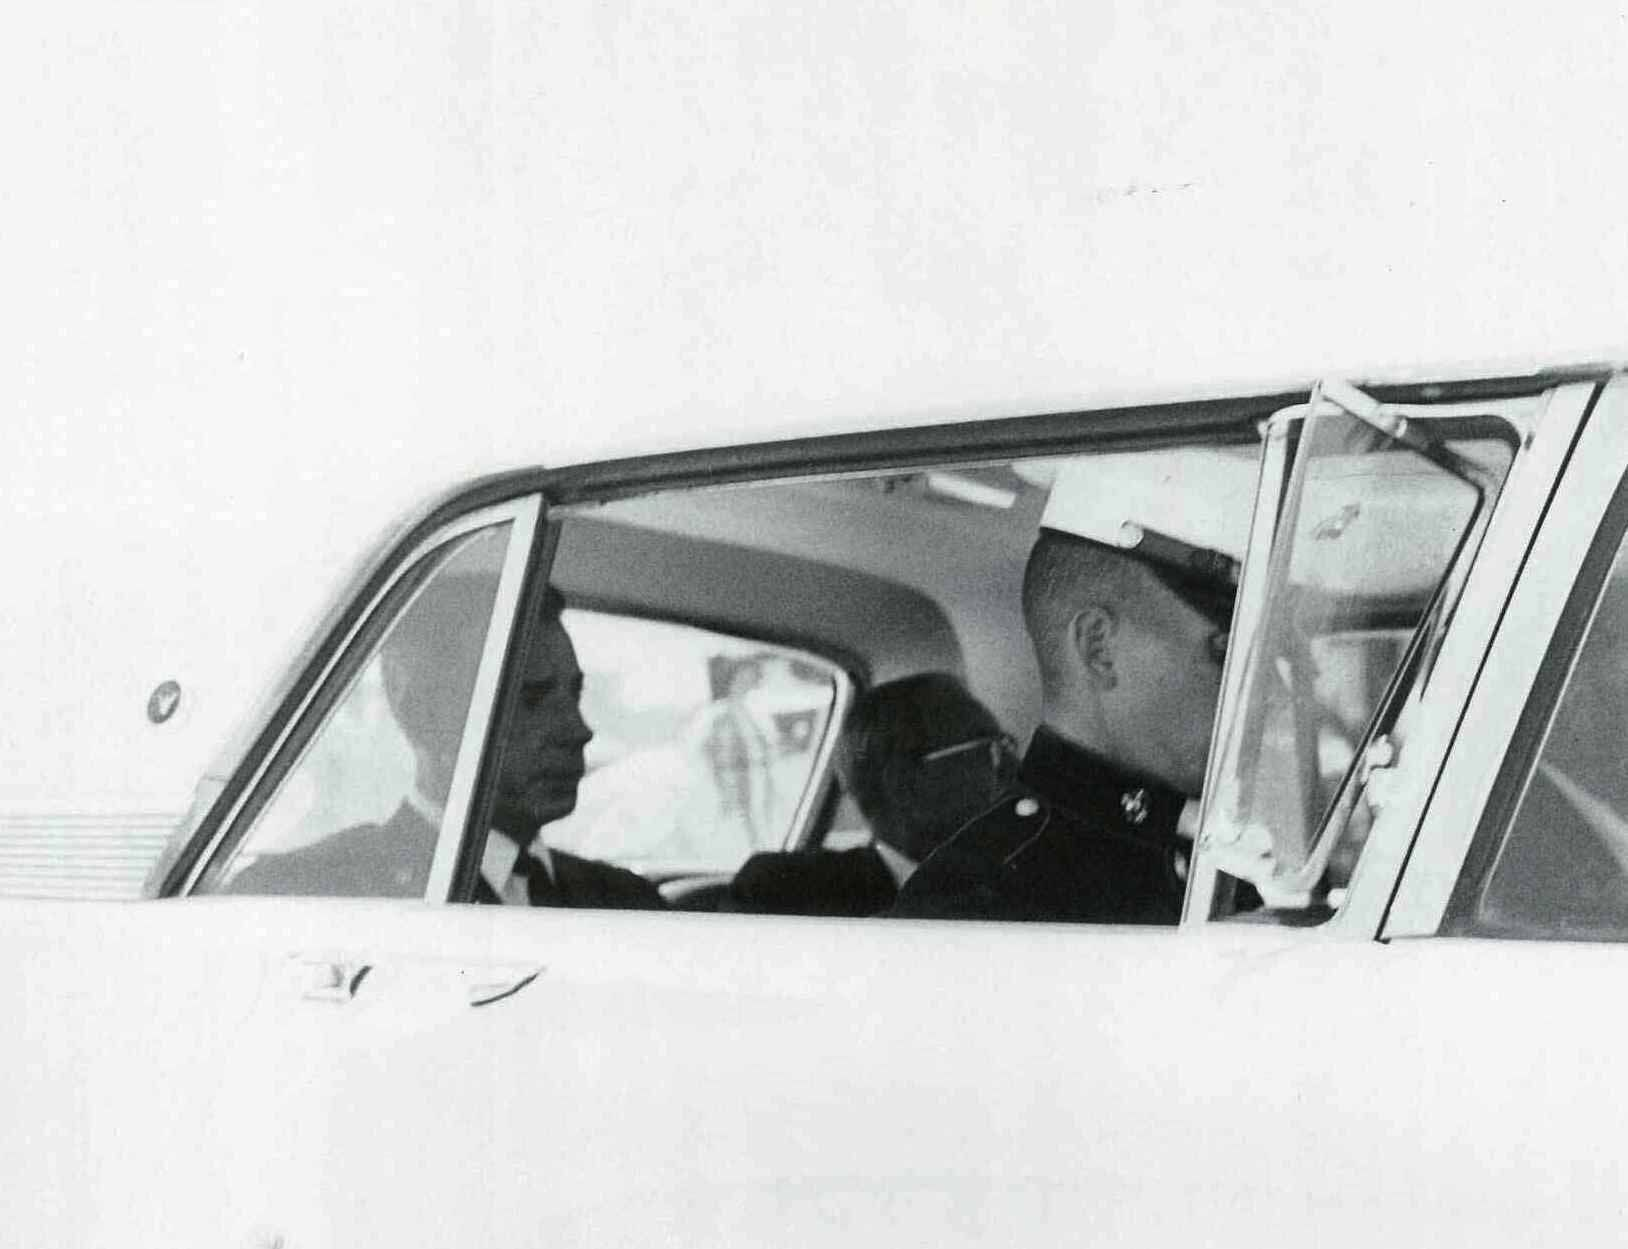 Joe dimaggio and his son leaving marilynus funeral august